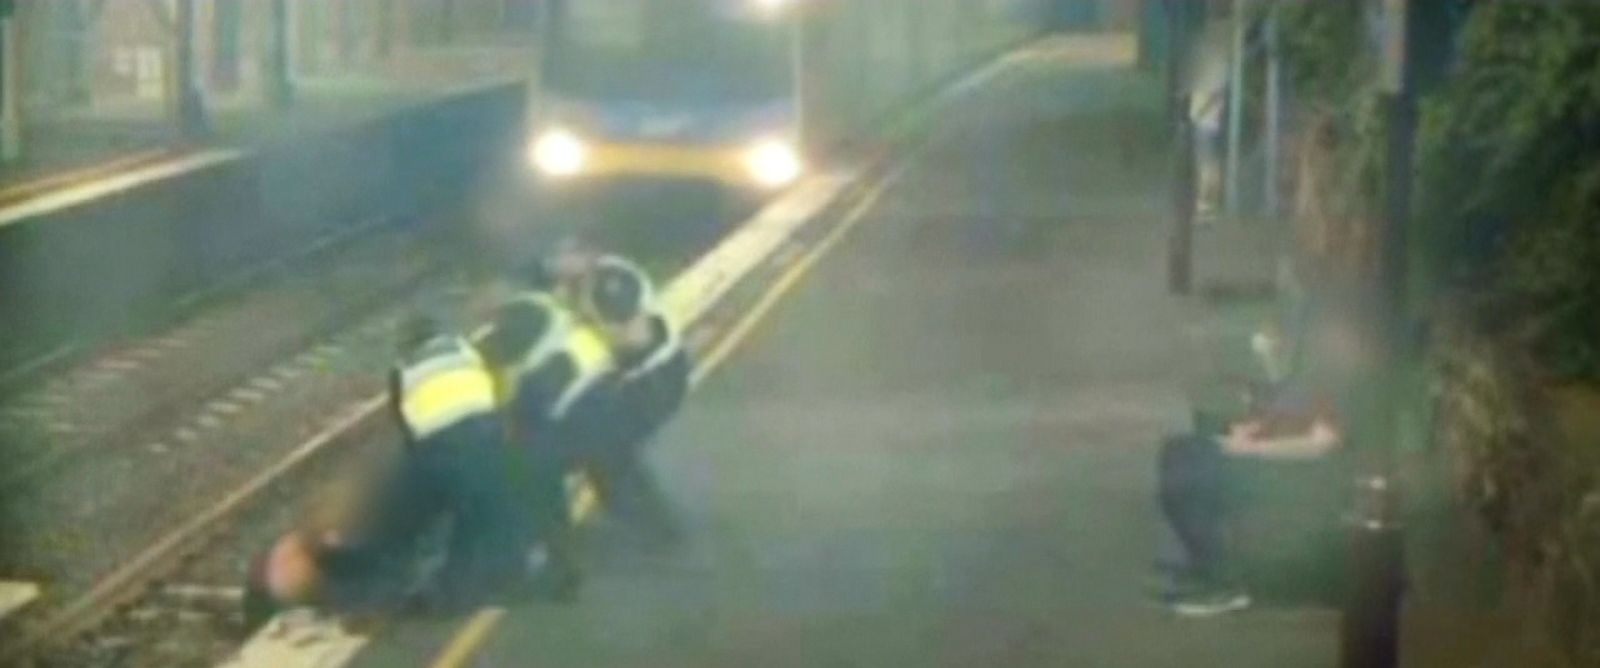 Three police officers rushed to pull her to safety just seconds before the train would have hit her.